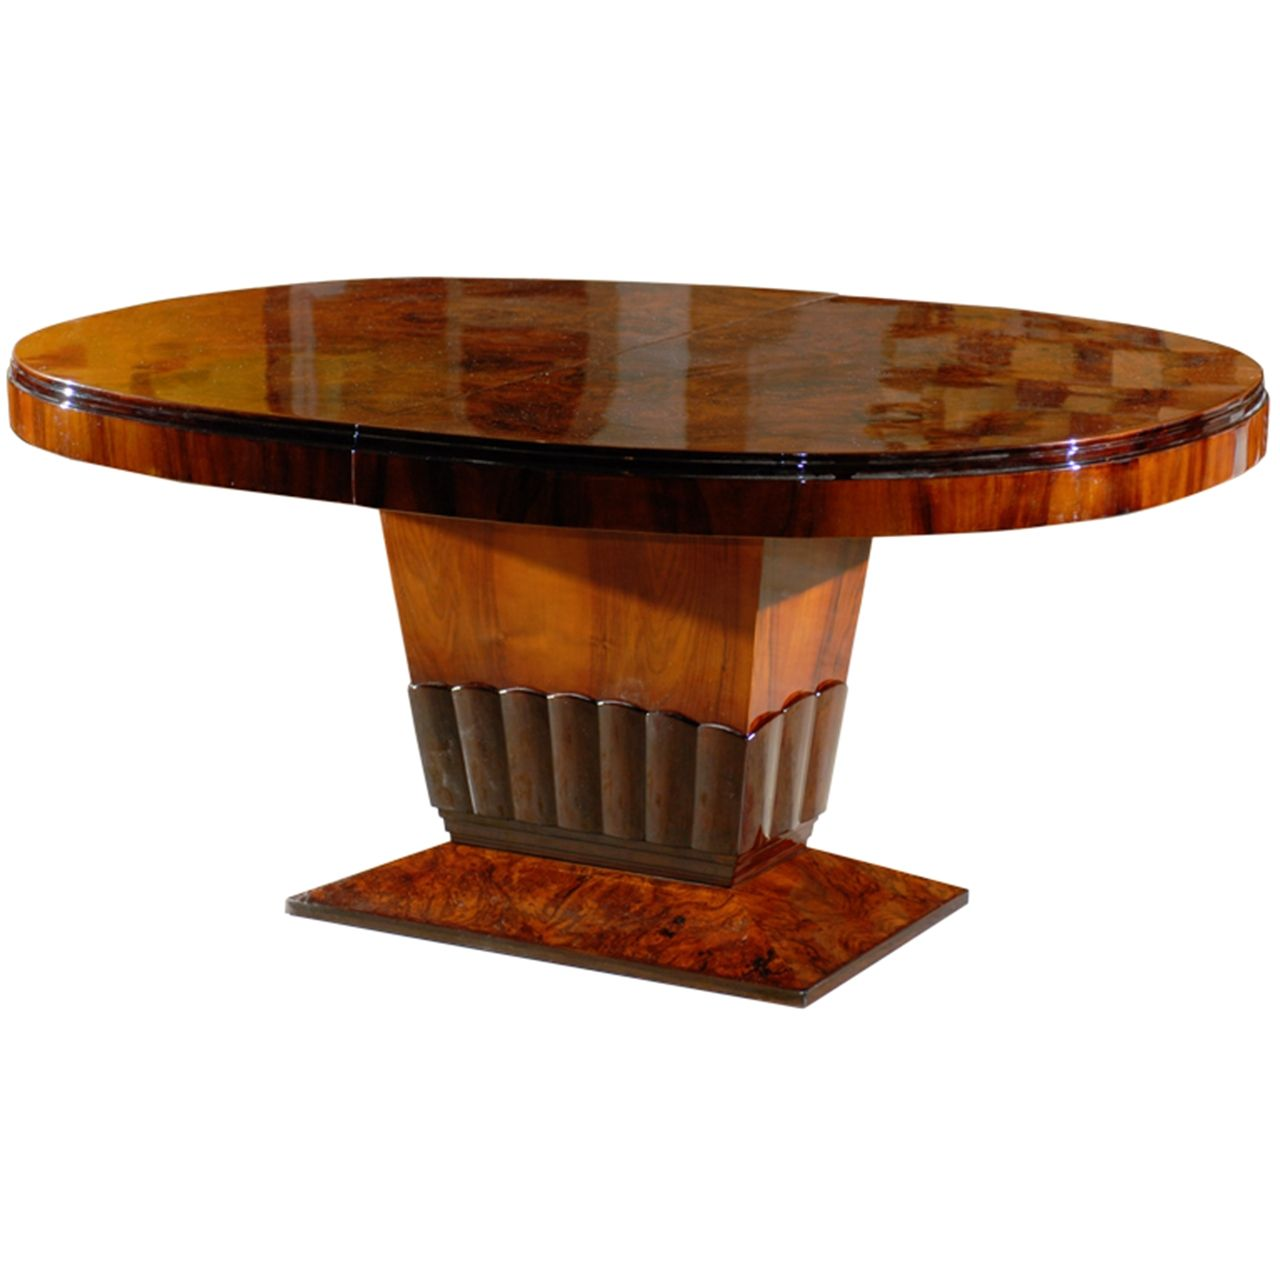 Art Deco Oval Dining Table with Tulip Base | Oval dining tables ...